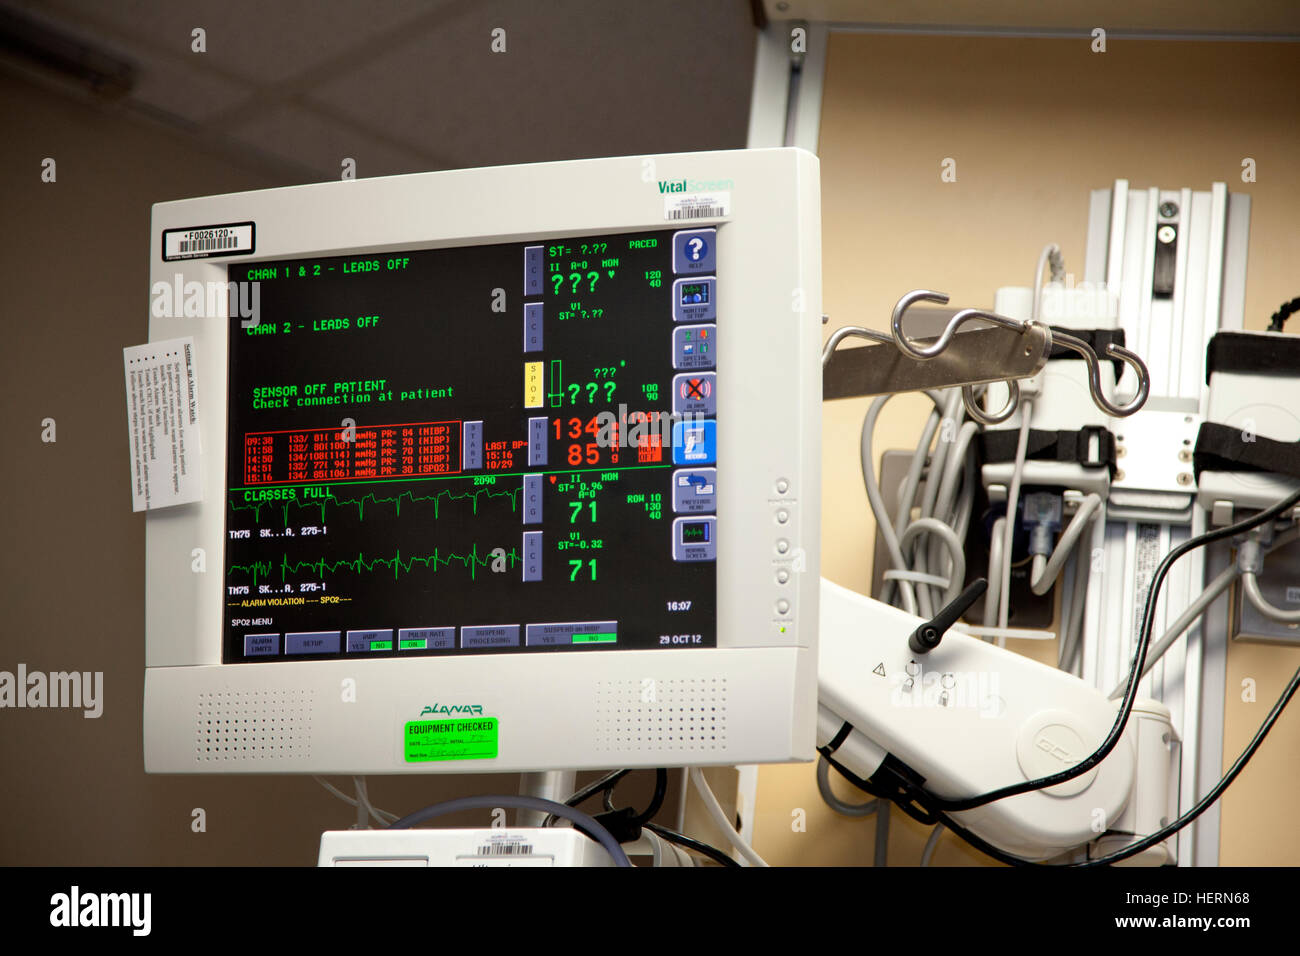 Hospital screen for visually monitoring patient vital signs. Minneapolis Minnesota MN USA - Stock Image